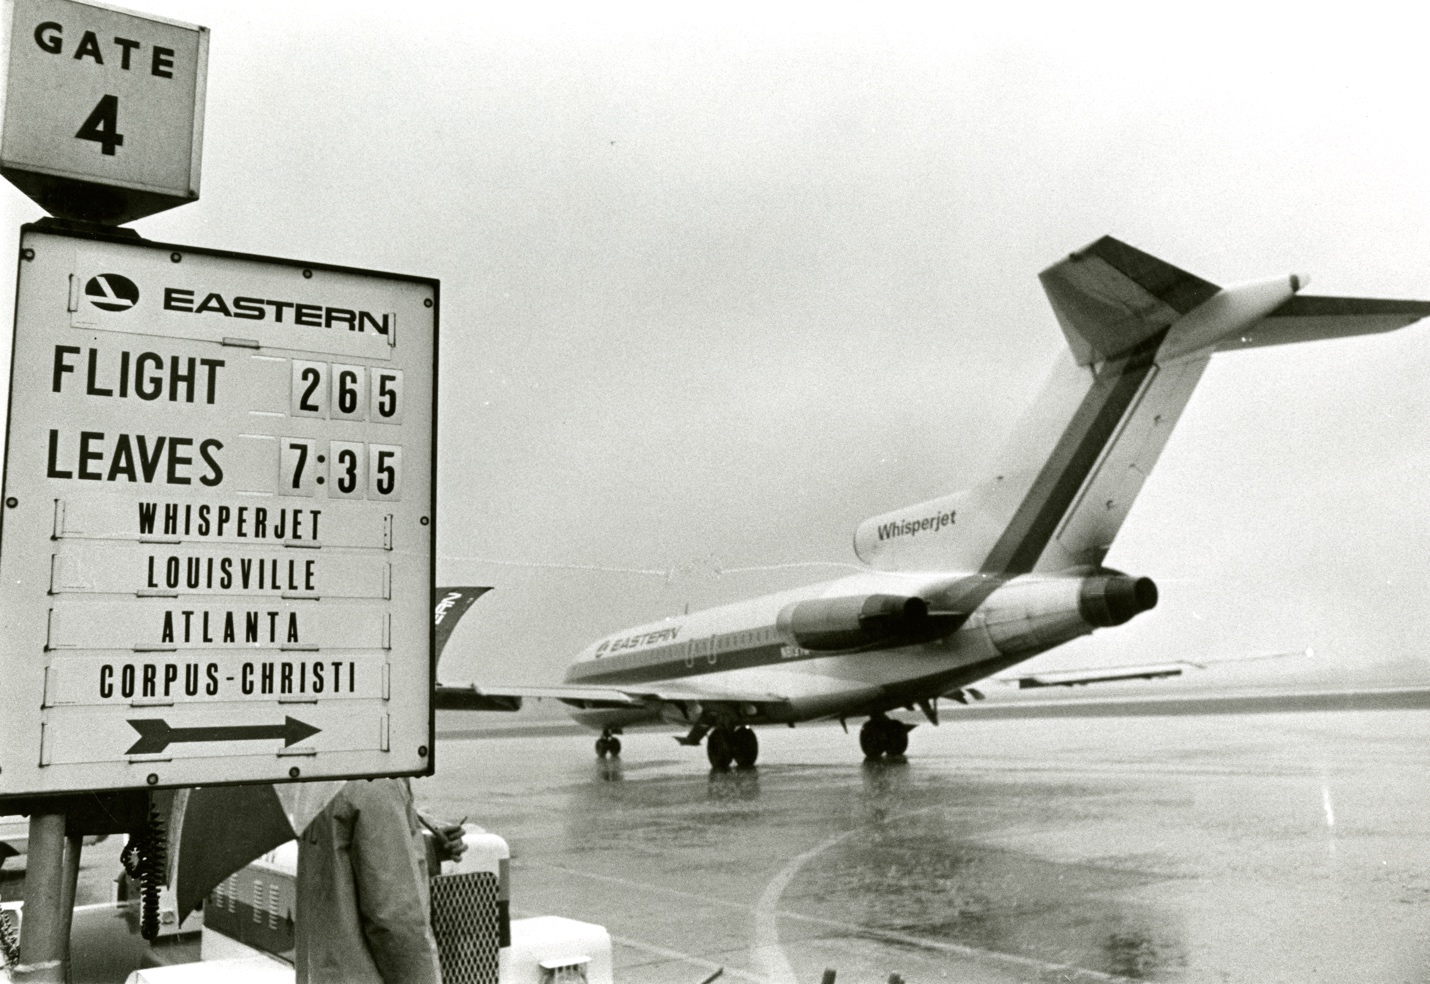 Regularly scheduled jet service commenced in Evansville with the landing and departure of an Eastern Airlines Whisperjet 727 on April 30, 1967.   Collection of the Evansville Museum    Gift of Kathie J. Meredith, Canadaigua, New York    In Memory of the Evansville Press and its Photographers    2013.027.0018